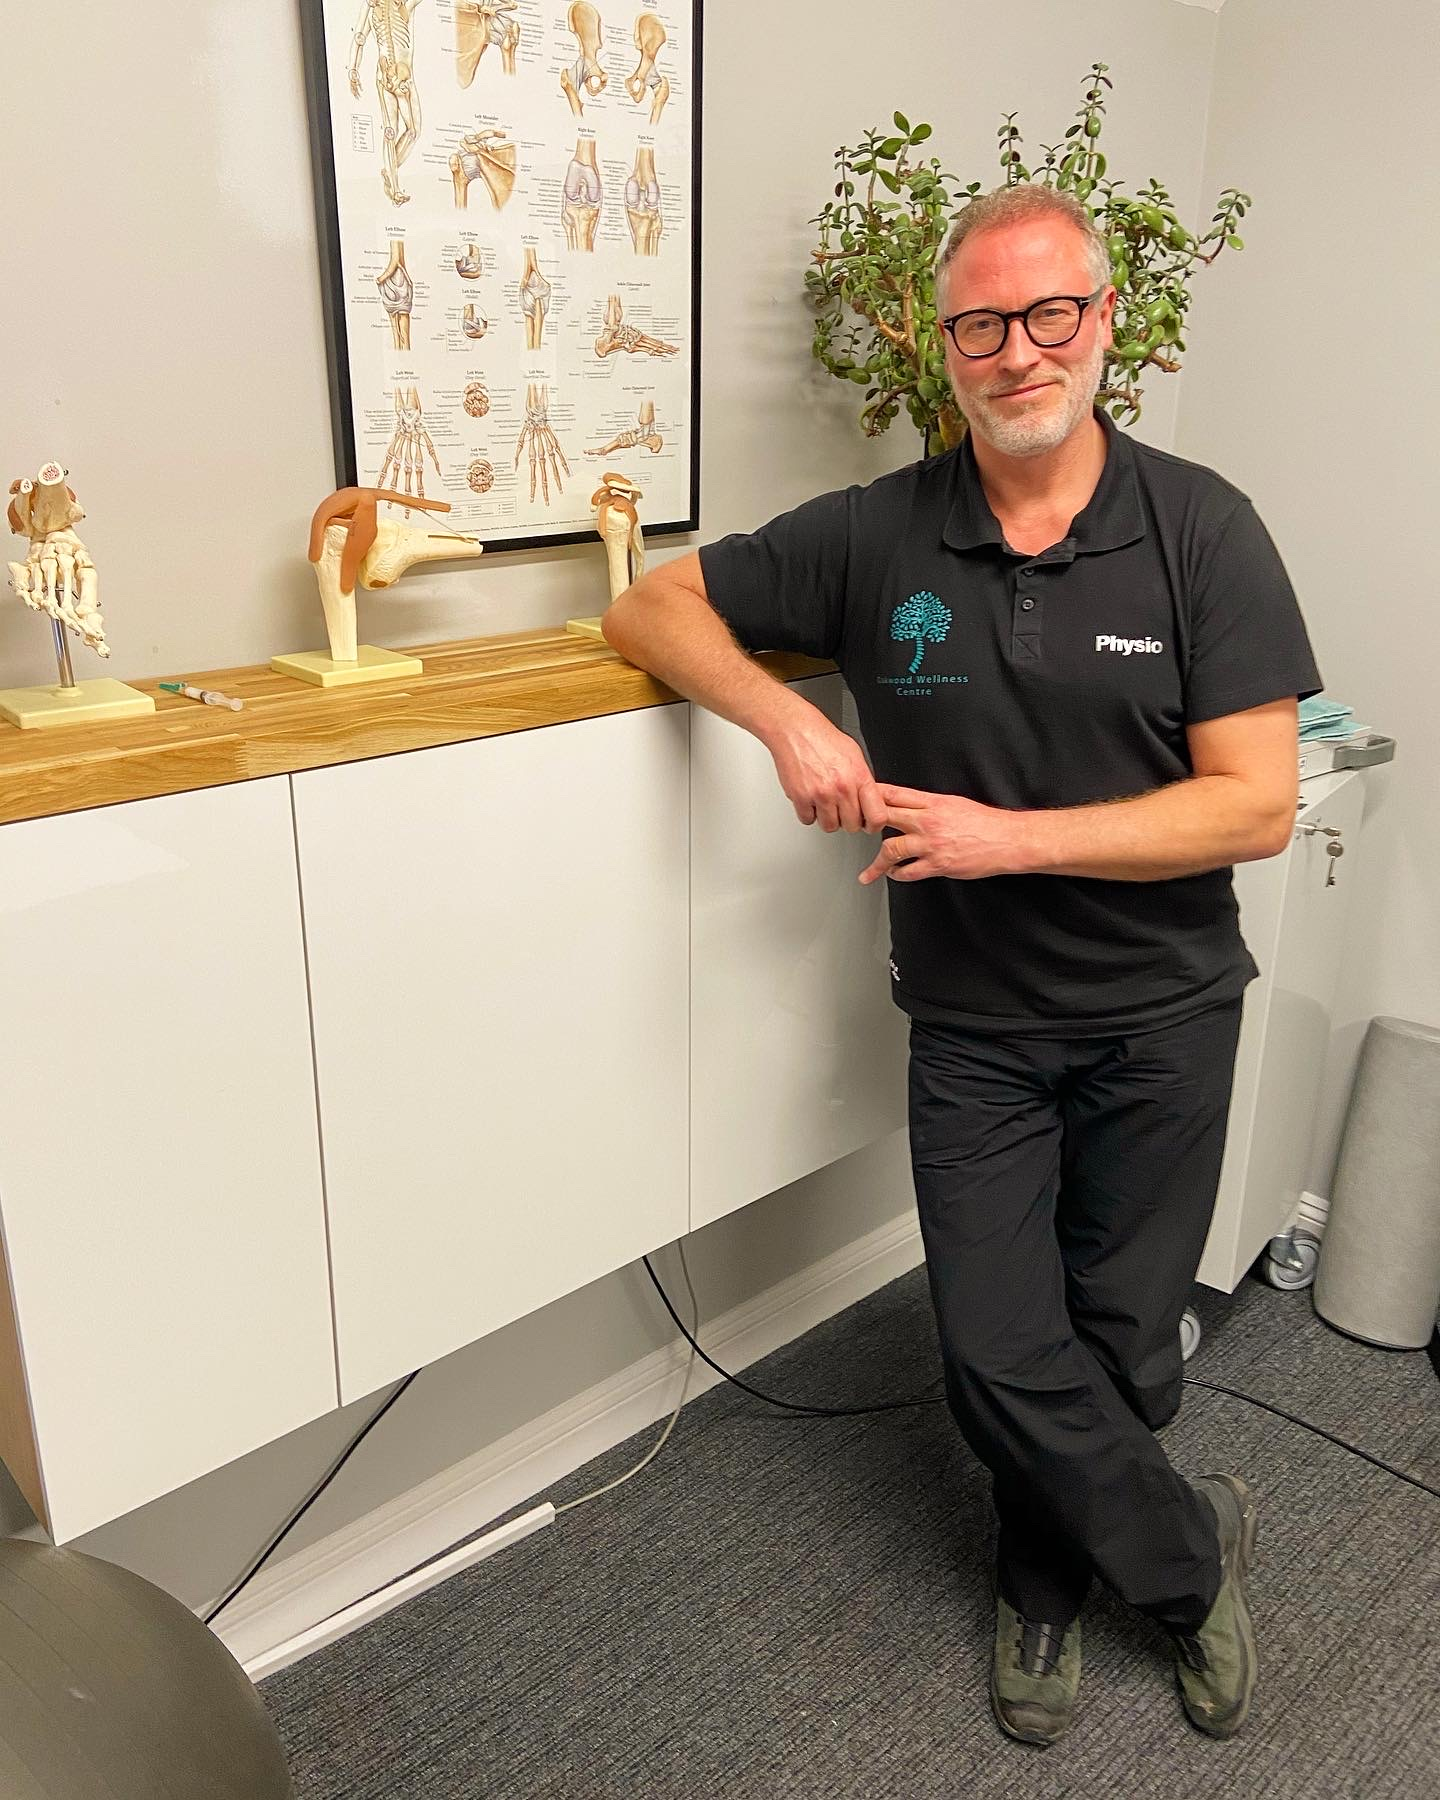 Ian Andrews - Senior Physio at Oakwood Physiotherapy